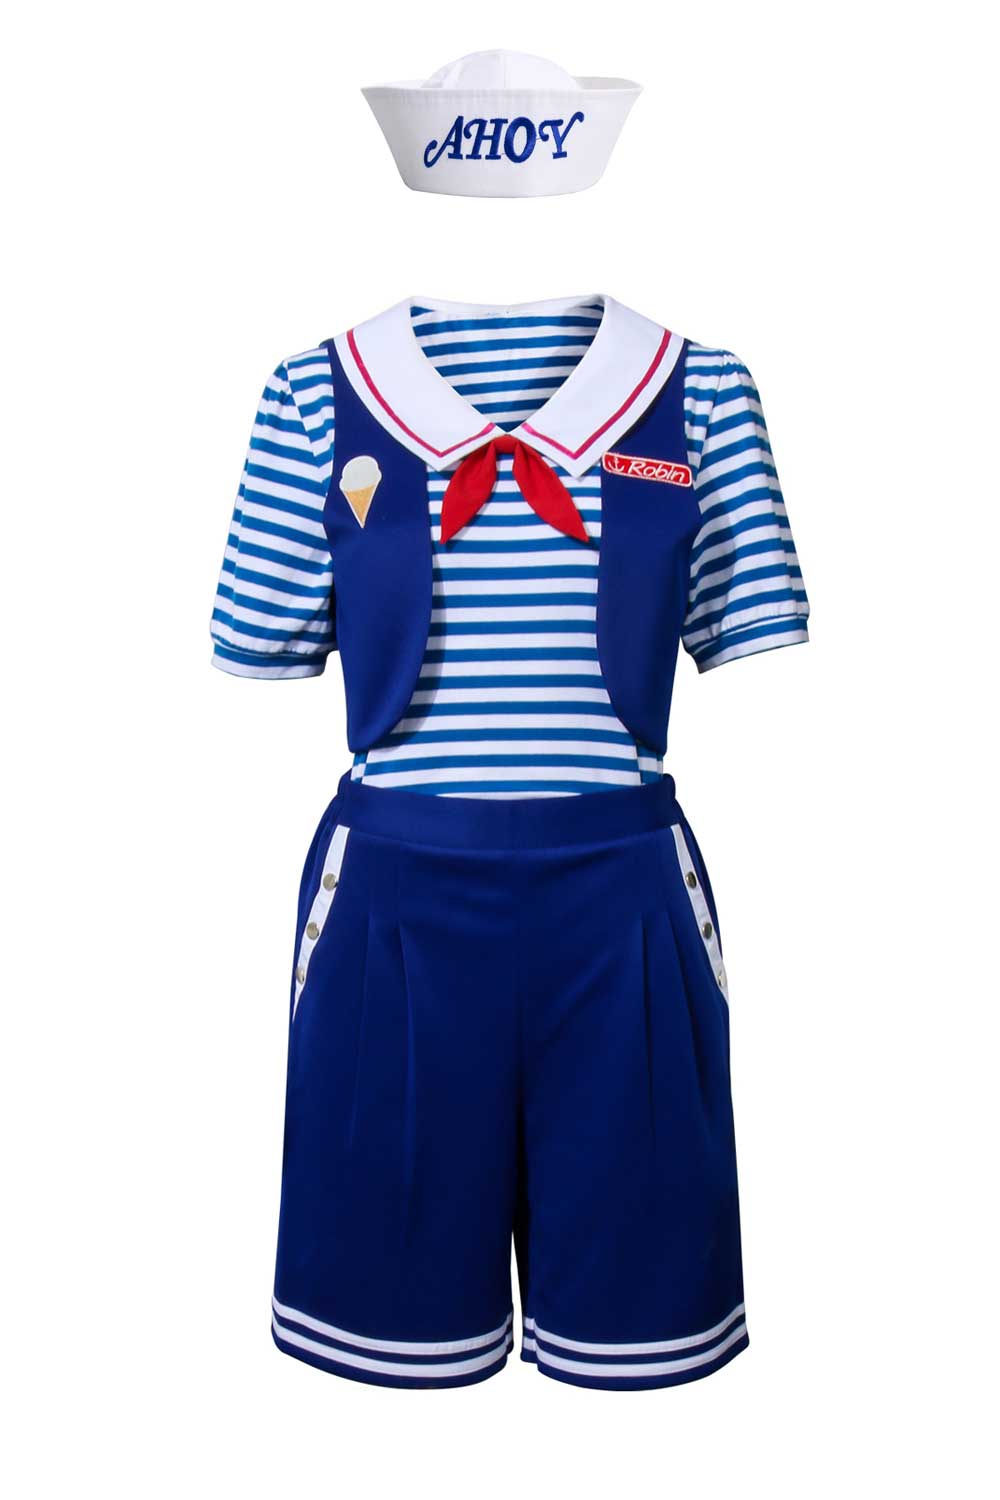 Stranger Things Season 3 Robin Scoops Ahoy Cosplay Costume For Adult